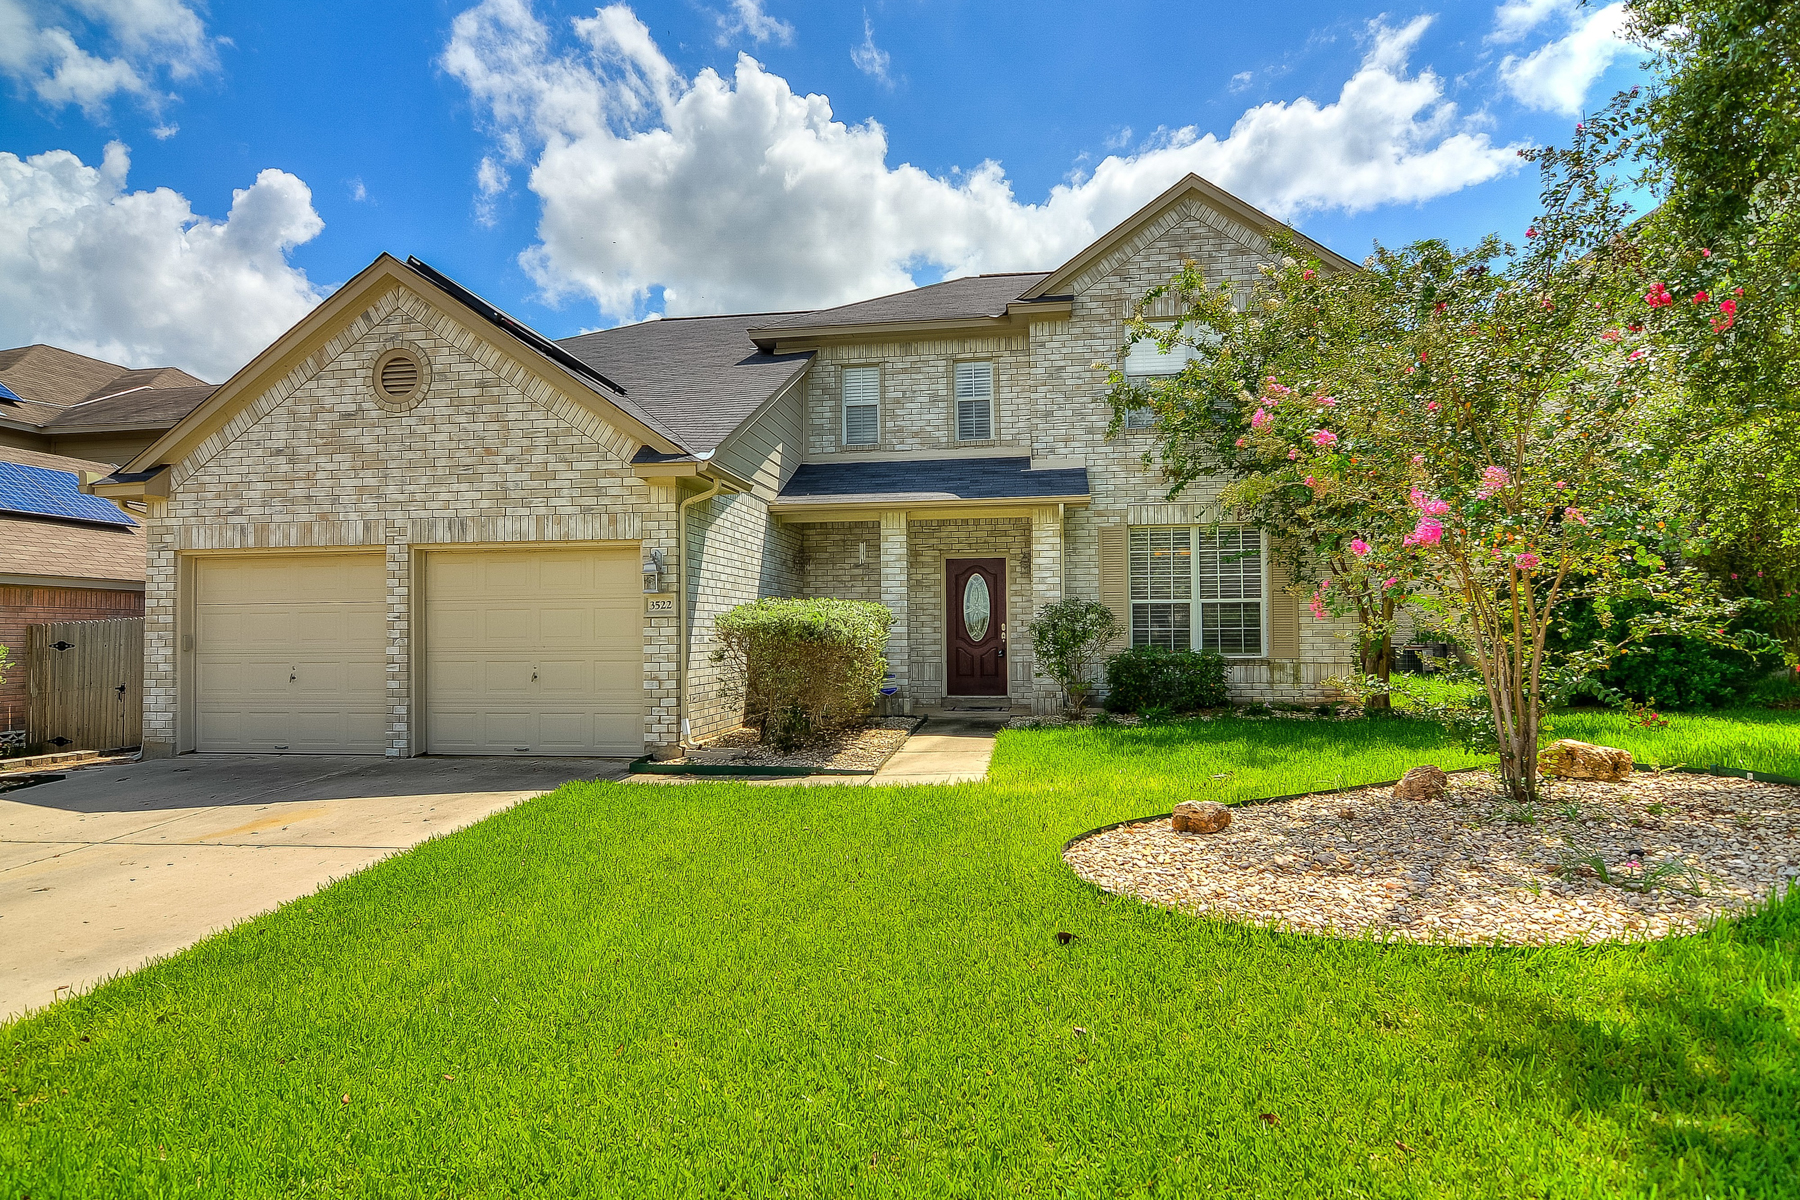 Single Family Home for Sale at Darling Home in Vistas of Encino 3522 Salano San Antonio, Texas 78259 United States